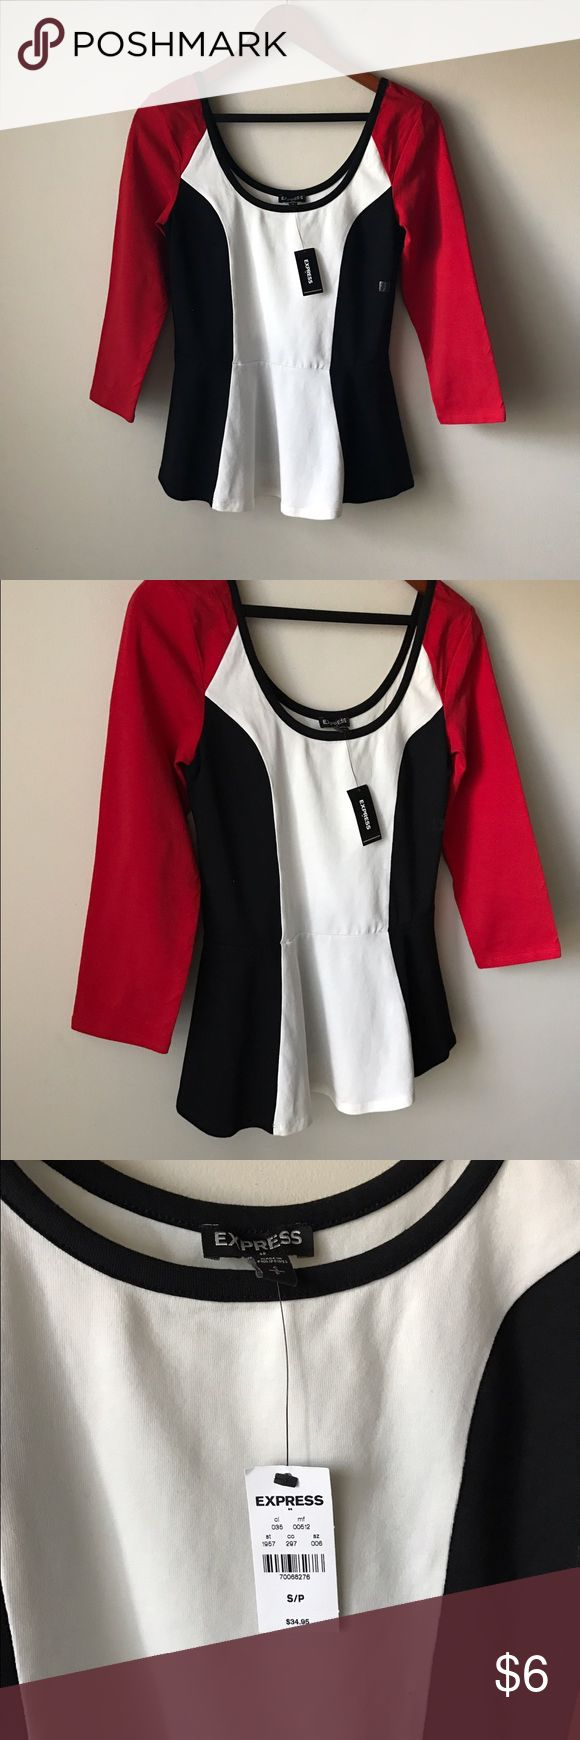 Express black white and red peplum top Black white and red colorblock peplum top - new with tags!! - size S Express Tops